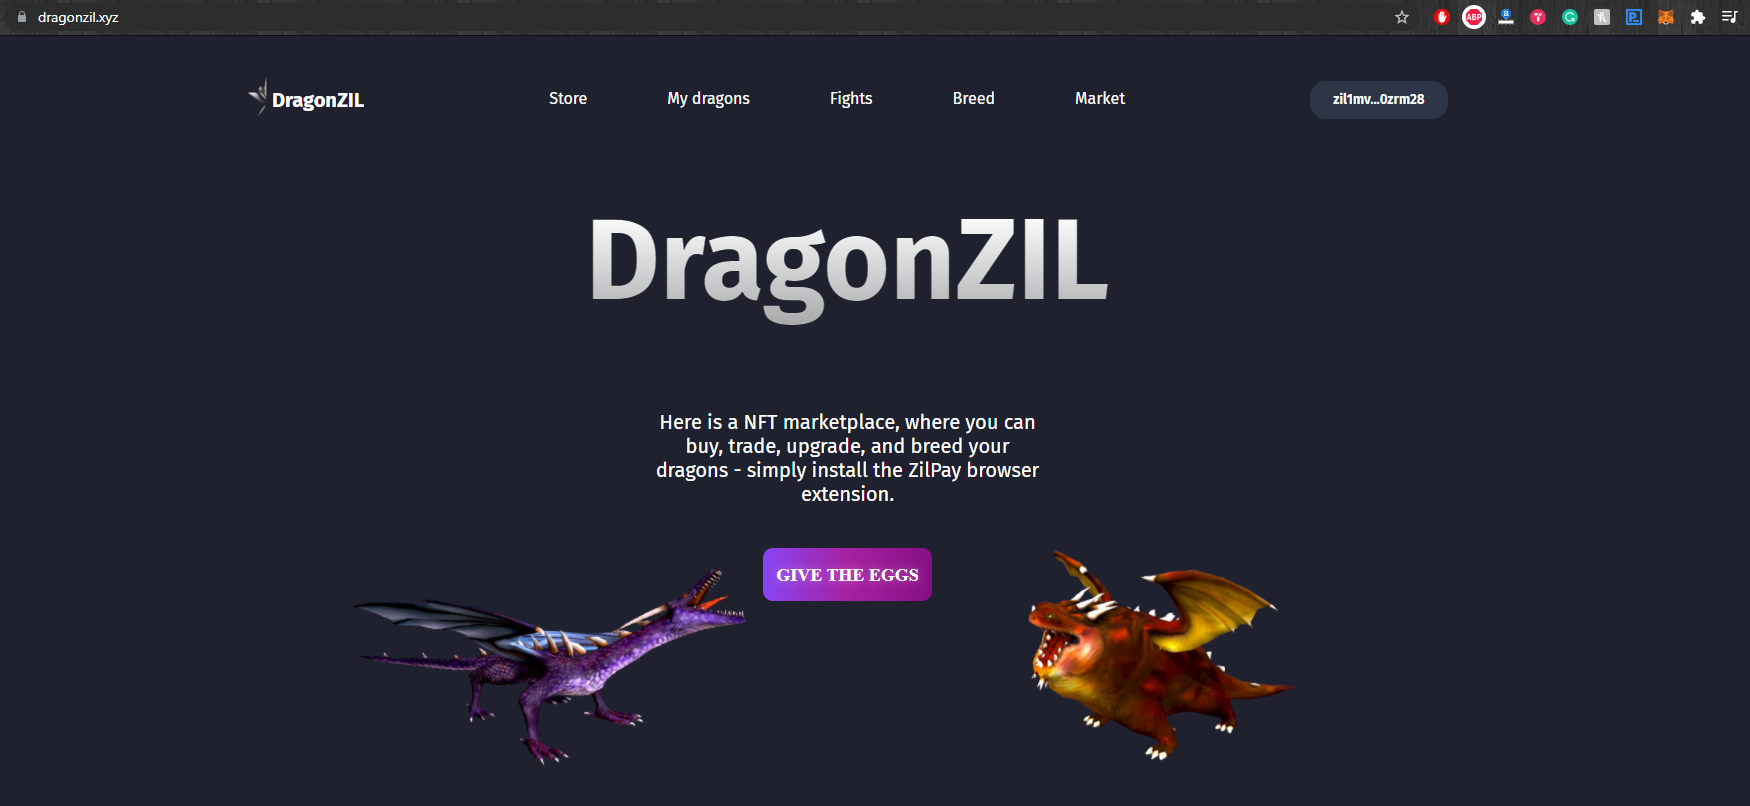 dragonzil_home.PNG